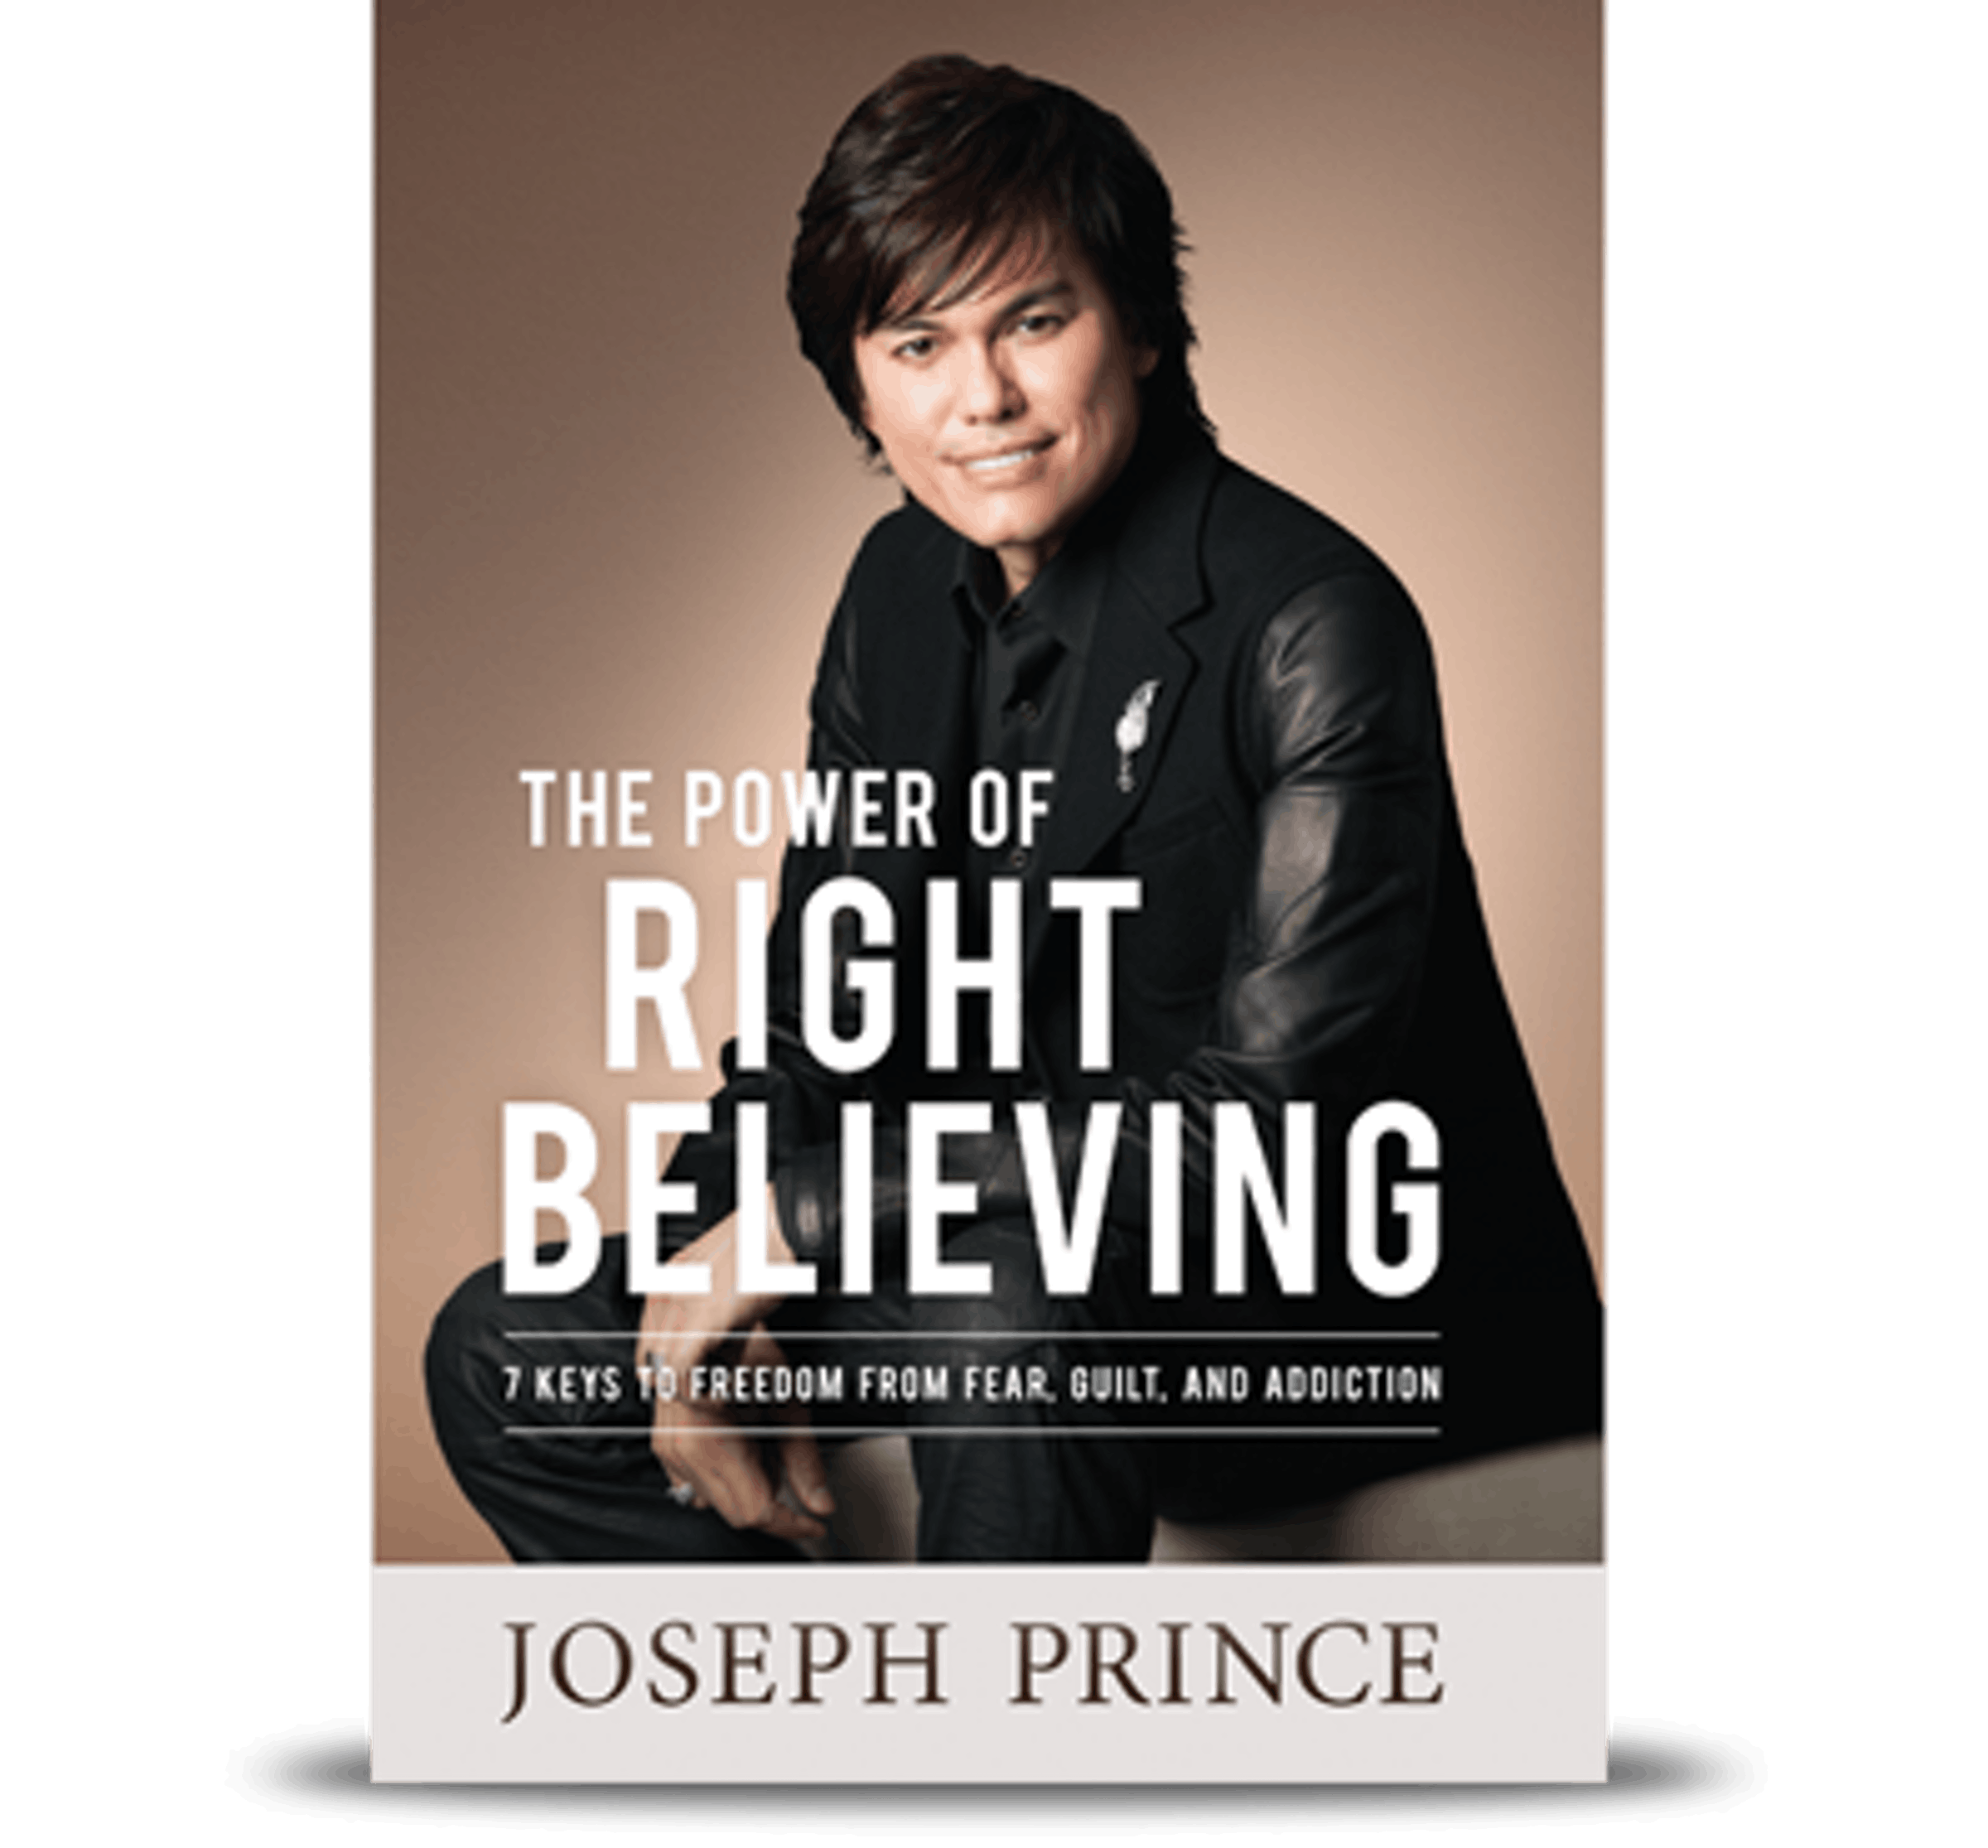 The power of right believing 7 keys to freedom from fear guilt the power of right believing 7 keys to freedom from fear guilt addiction joseph prince resources fandeluxe Choice Image